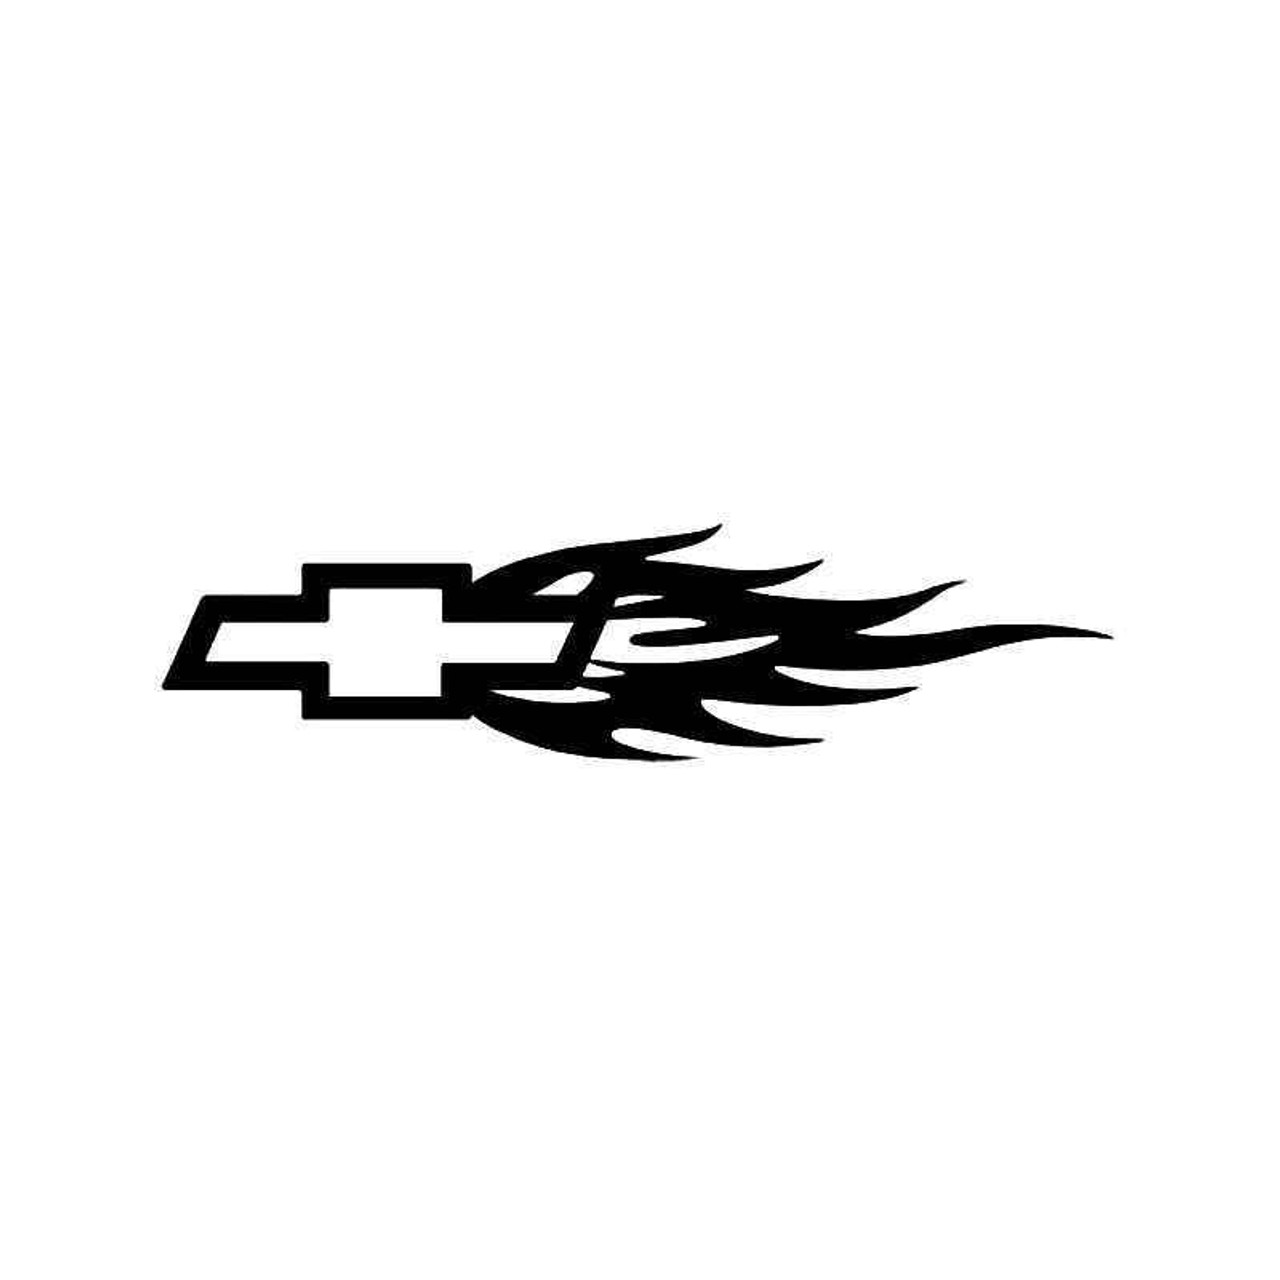 Chevy Bow Tie Flame 2 Vinyl Sticker